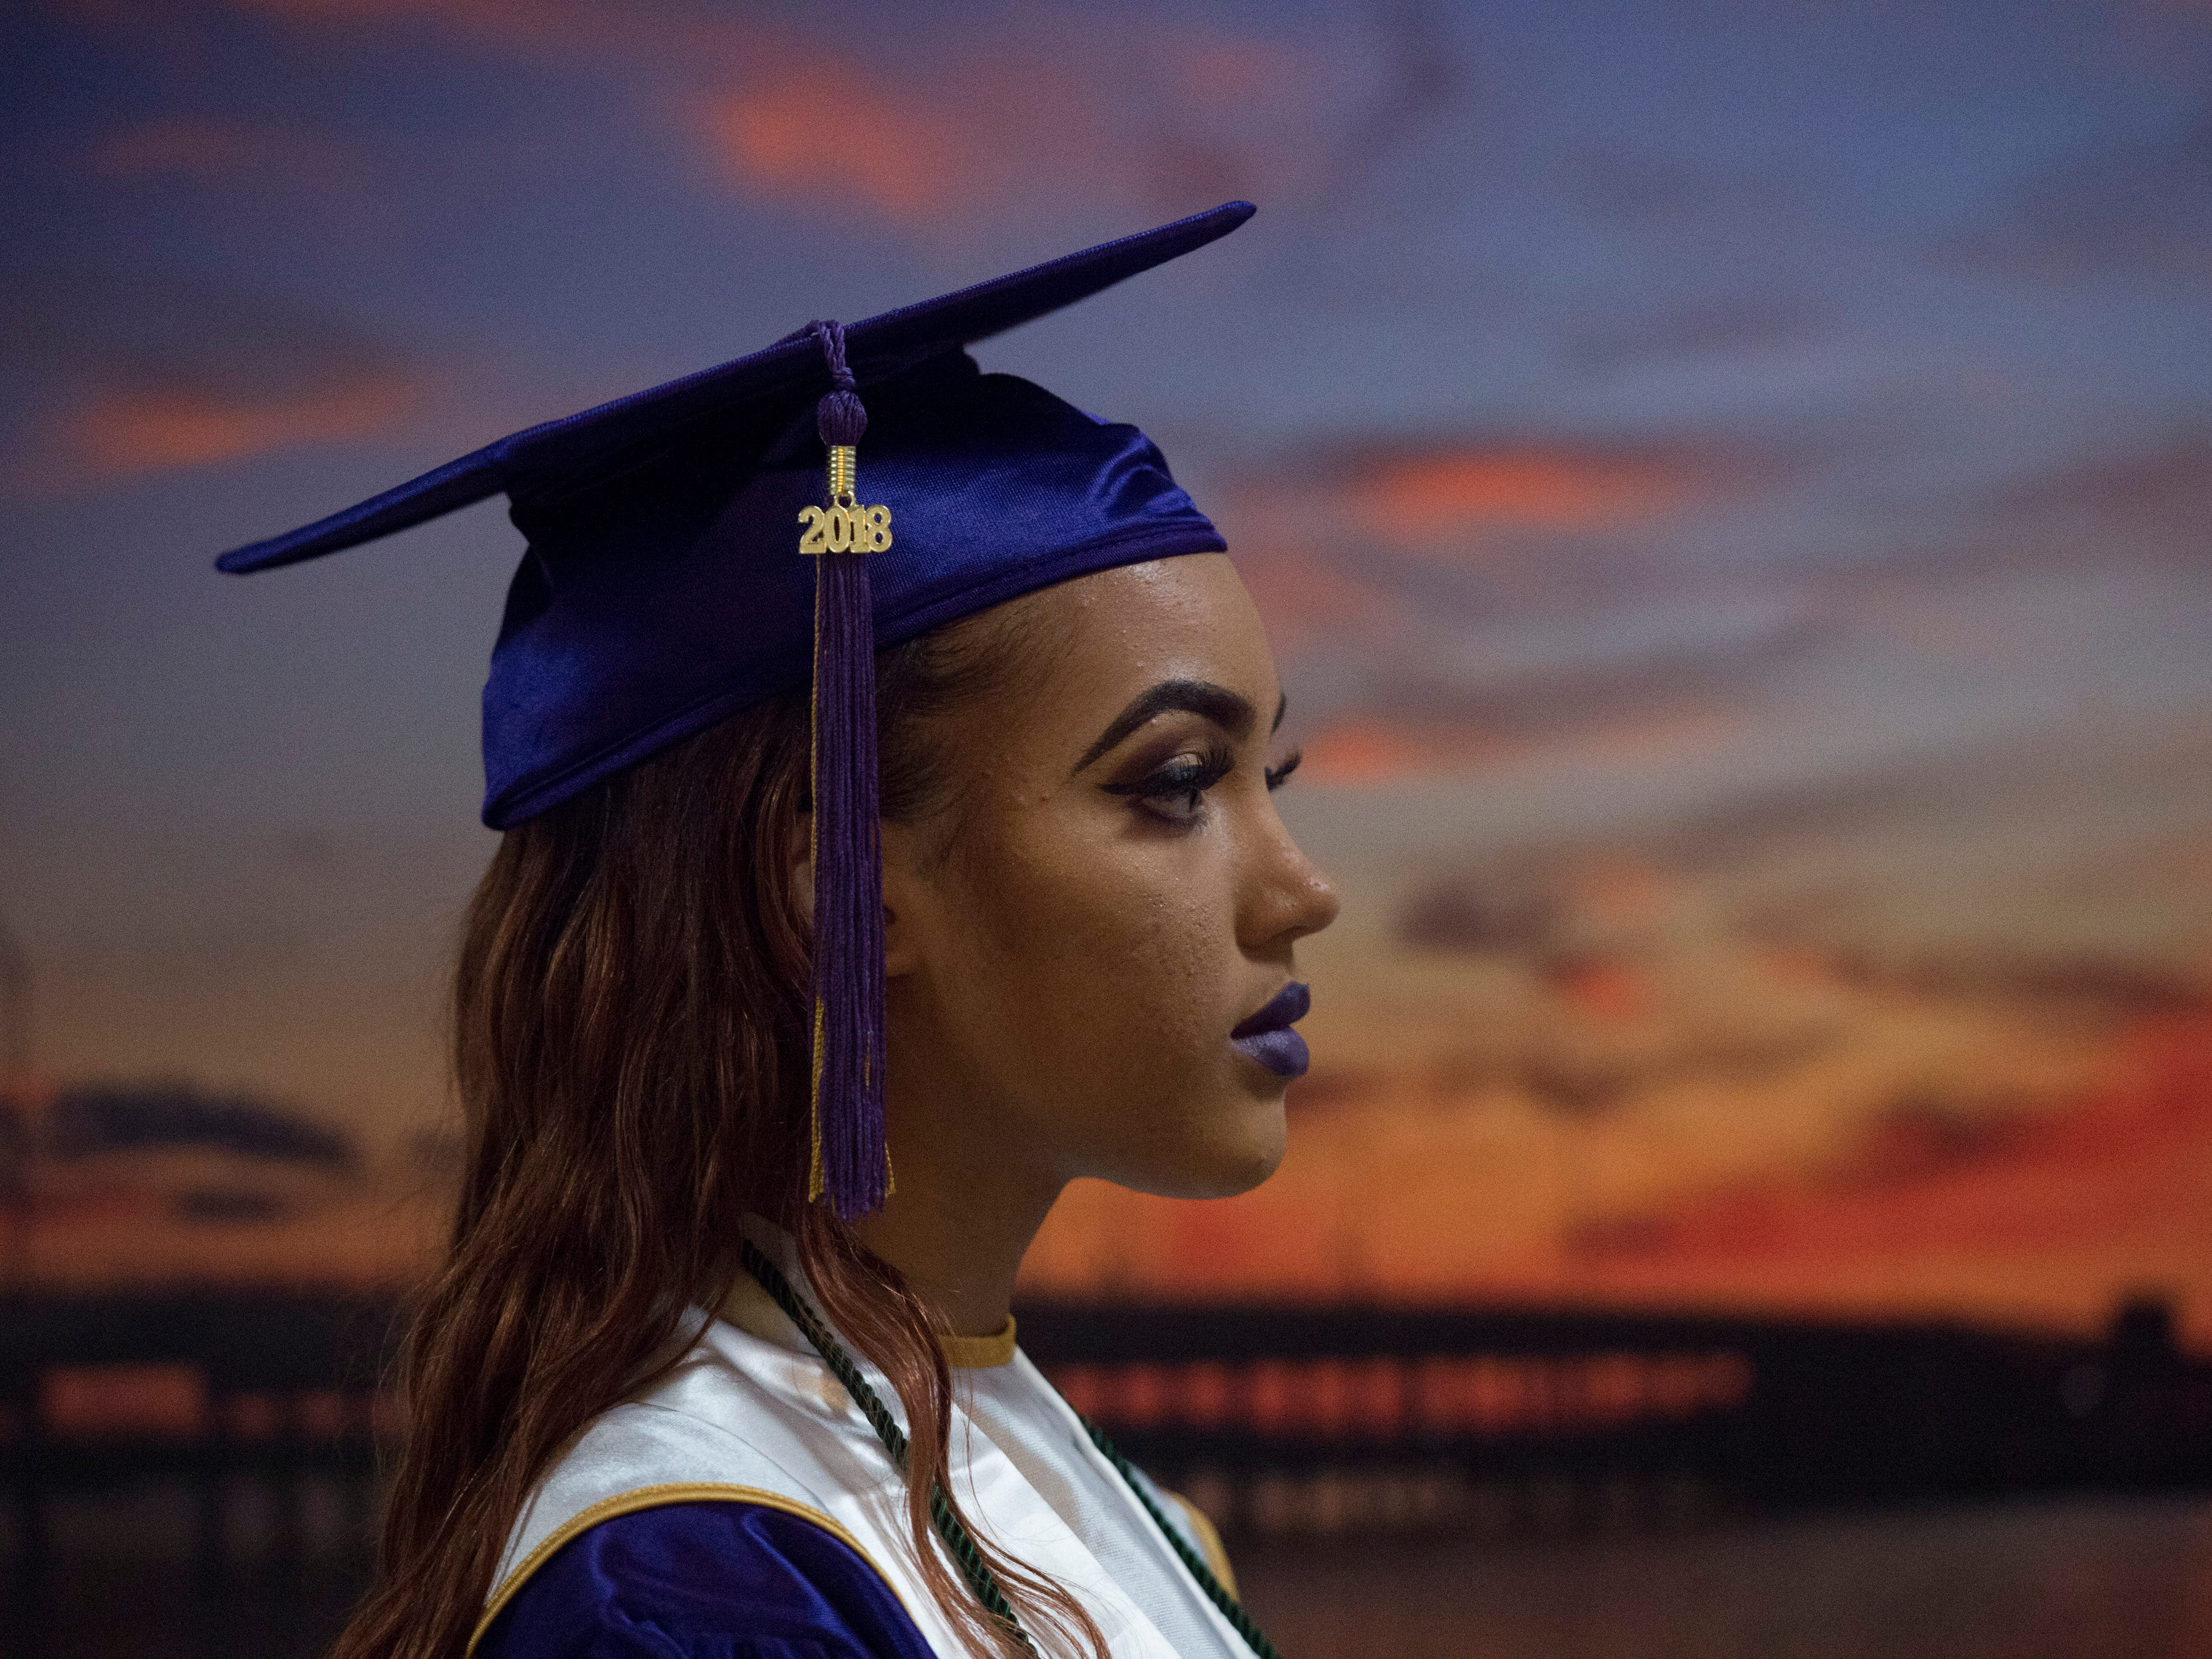 """""""I'm excited to get it done,"""" said Fort Pierce Central High School graduate Olivia Atandi, 18, of Port St. Lucie, standing in front of an image of a Fort Pierce sunset ahead of the school's 2018 commencement ceremony May 25, 2018, at the Havert L. Fenn Center in Fort Pierce. Because of flooding, the commencement was moved from the St. Lucie County Fairgrounds and split into two ceremonies Friday."""